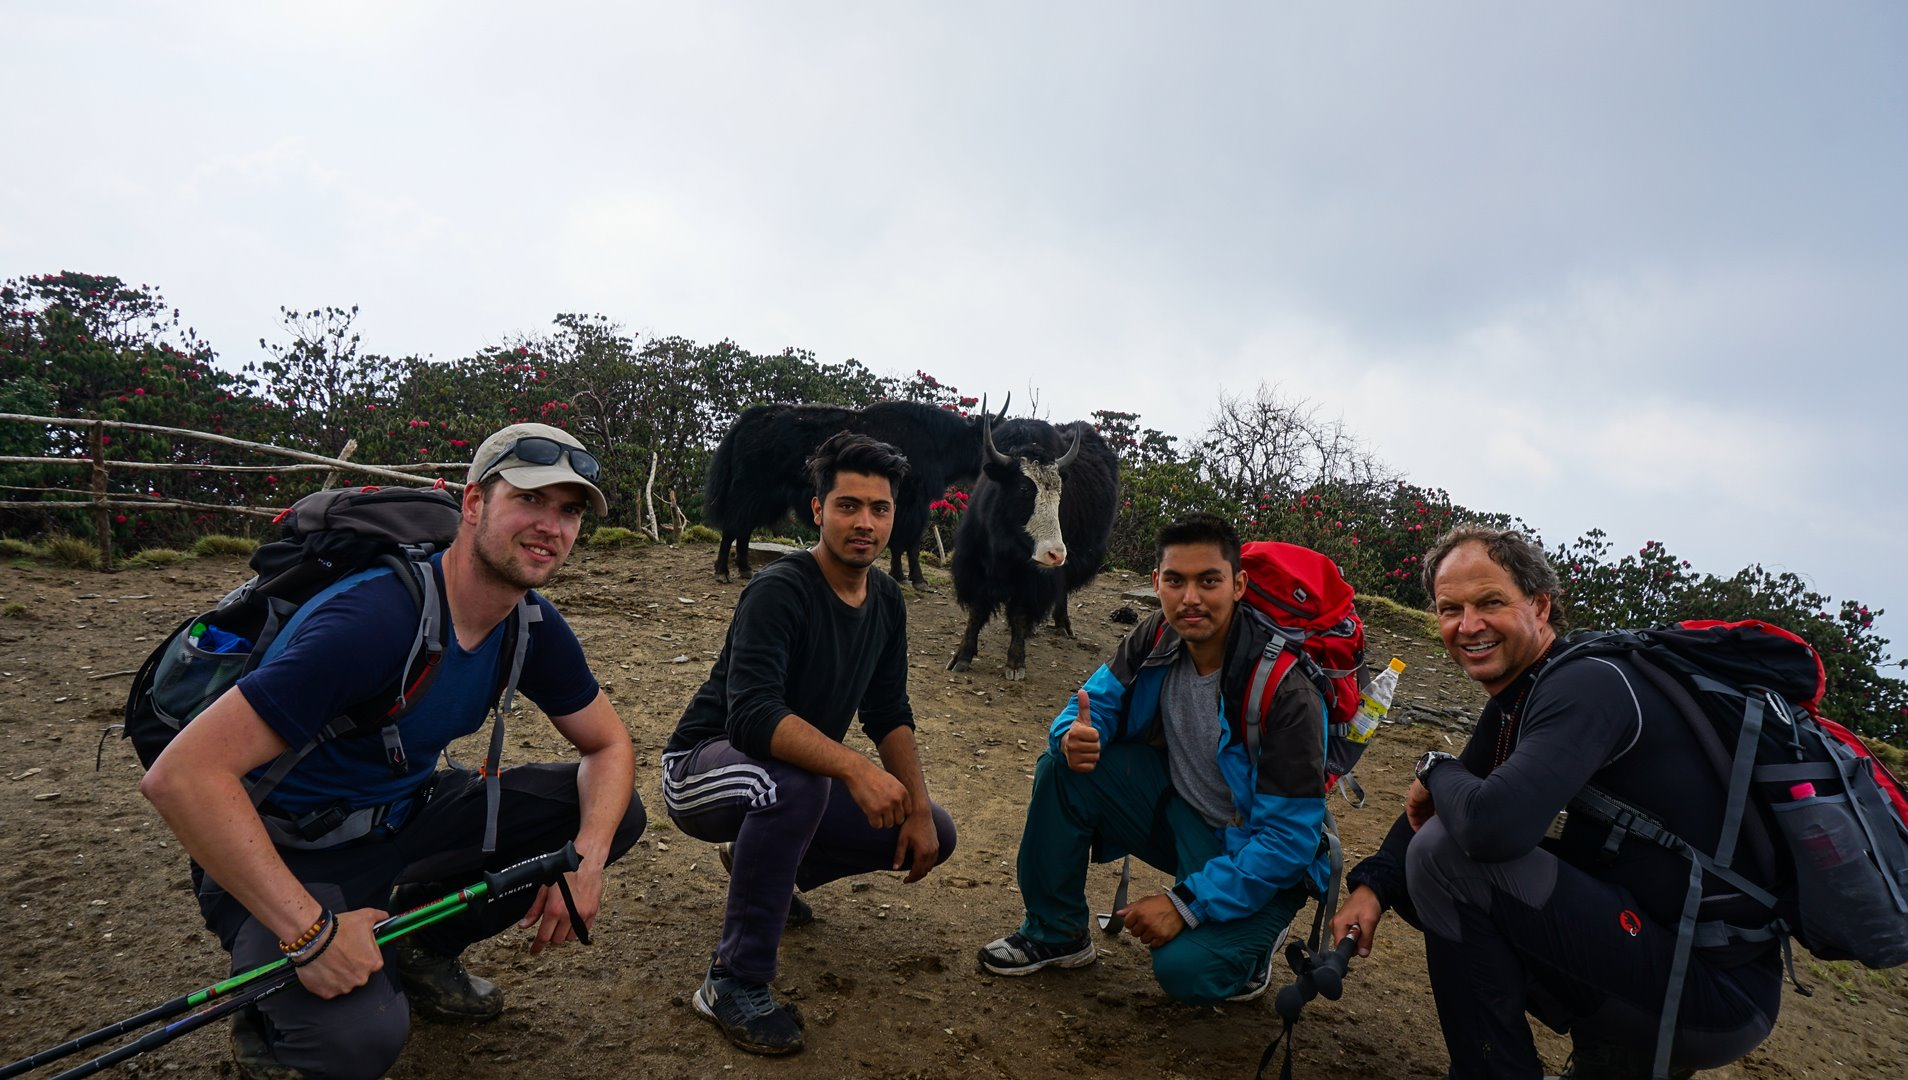 Yak farm, Mardi Himal base camp trek in Nepal